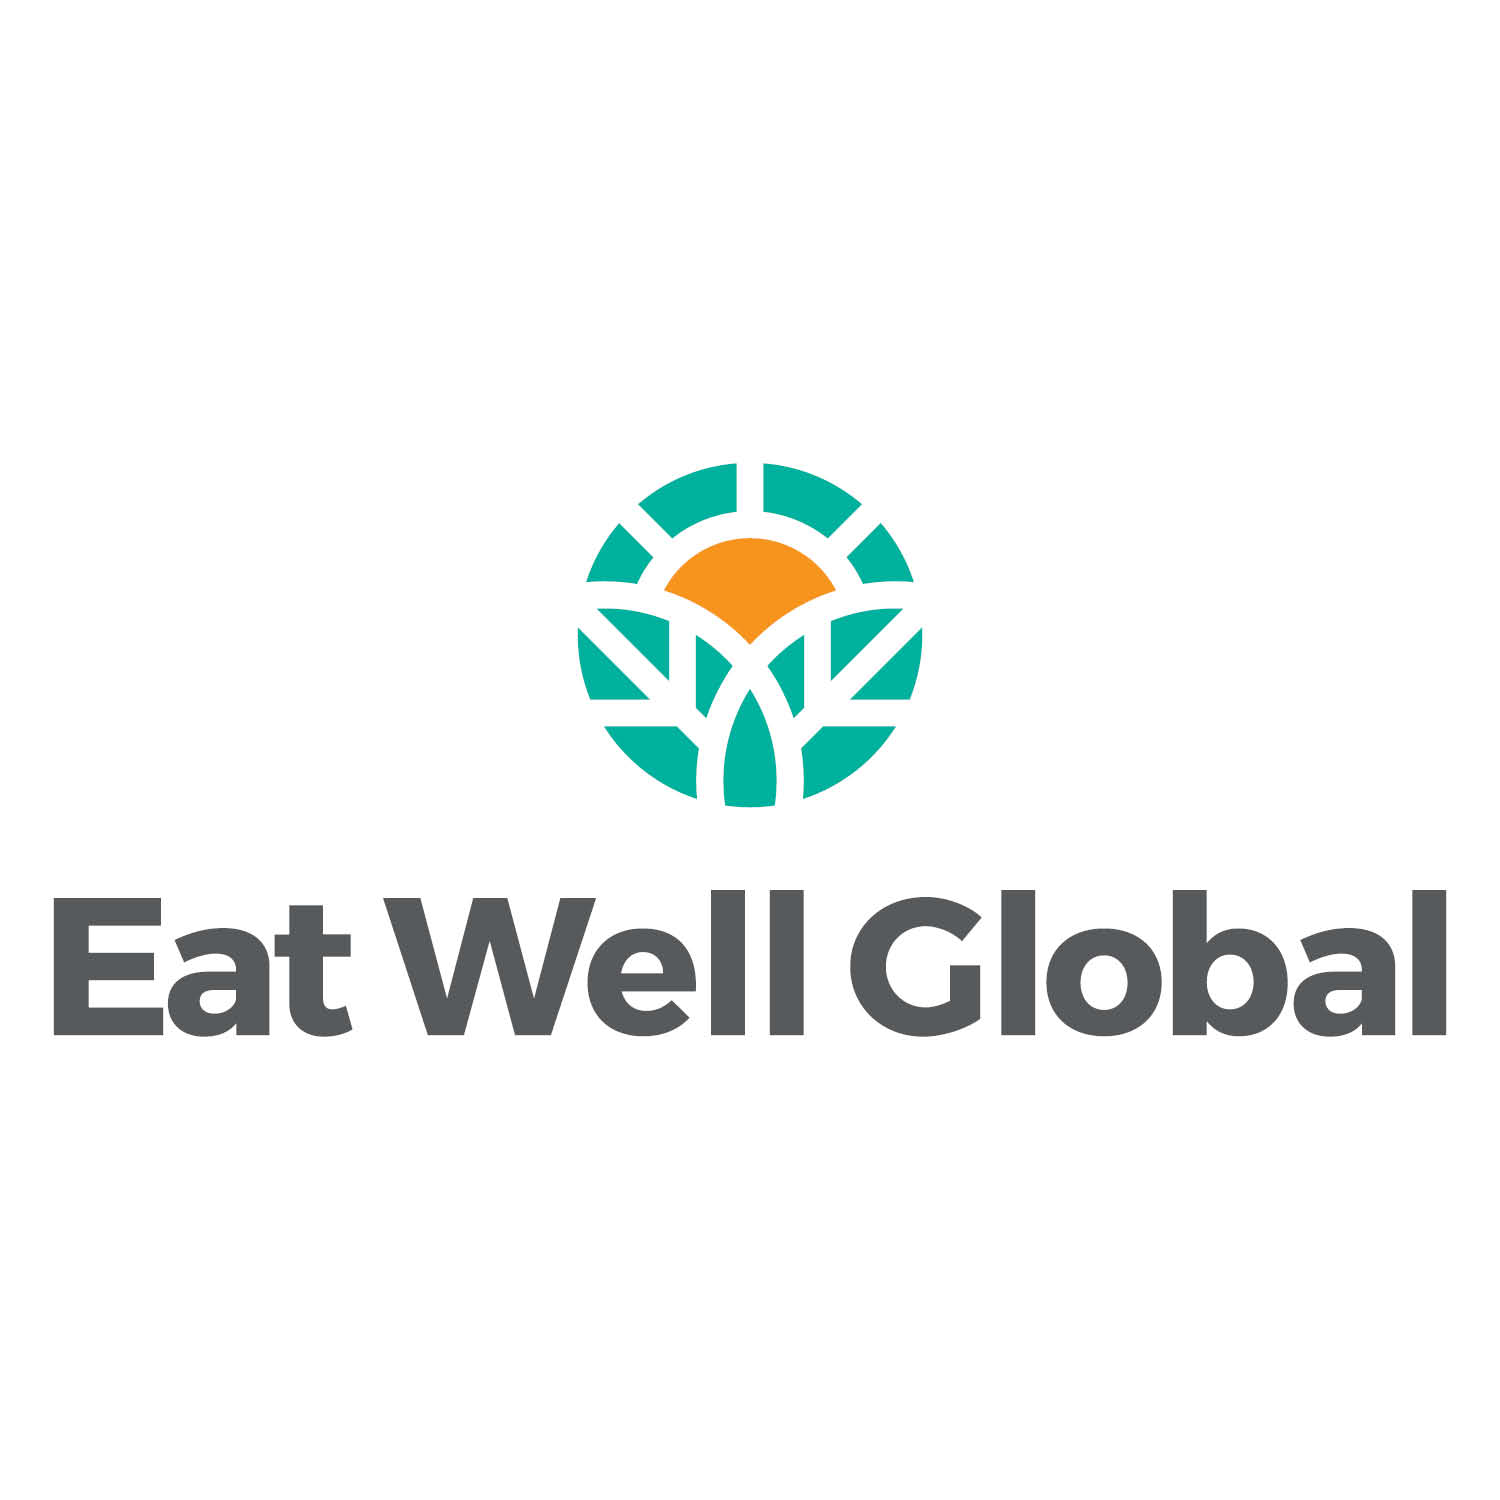 Eat Well Global